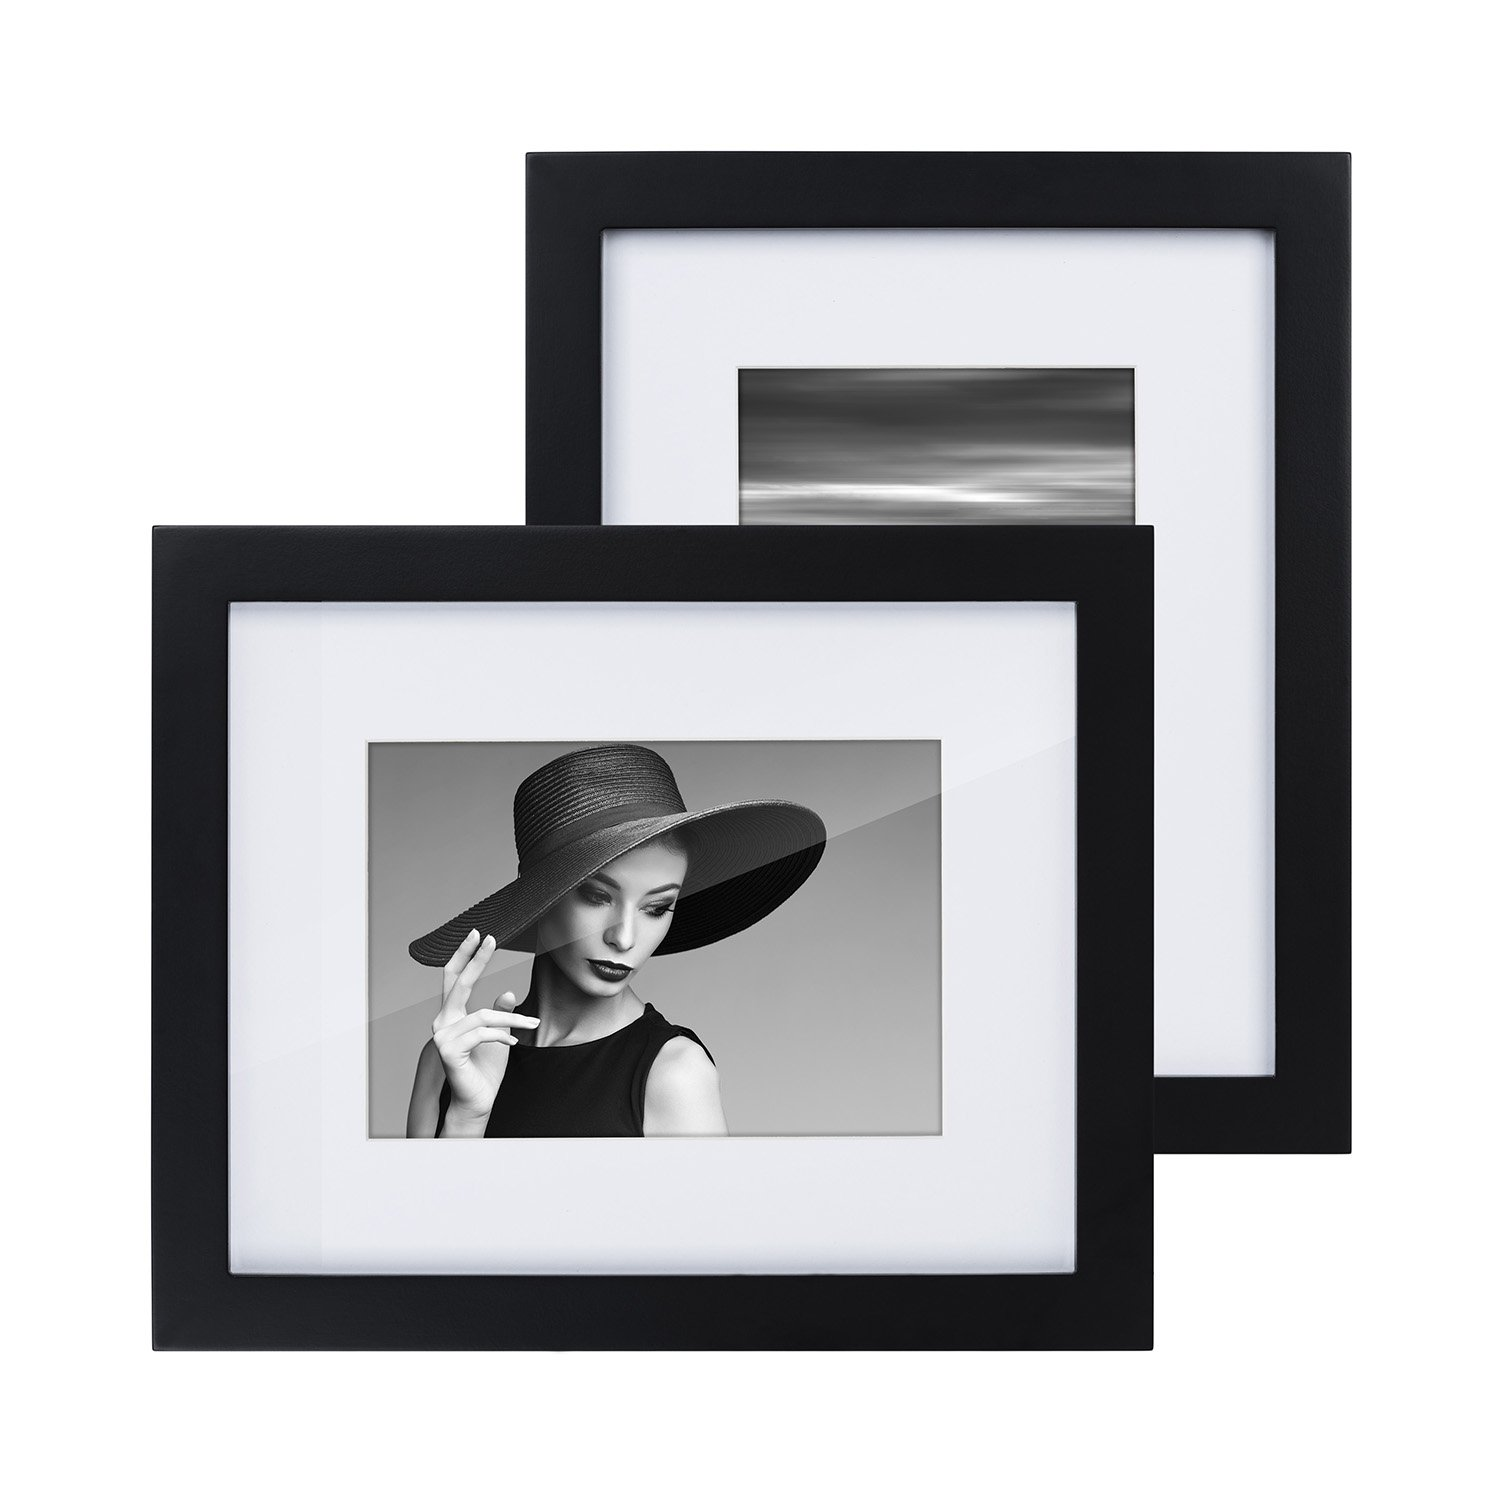 RooLee 2-Pack 8x10 Picture Frame Black Wood Photo Frame for Picture 5x7 with Mat or 8x10 Without Mat - Wall Mount or Tabletop Display